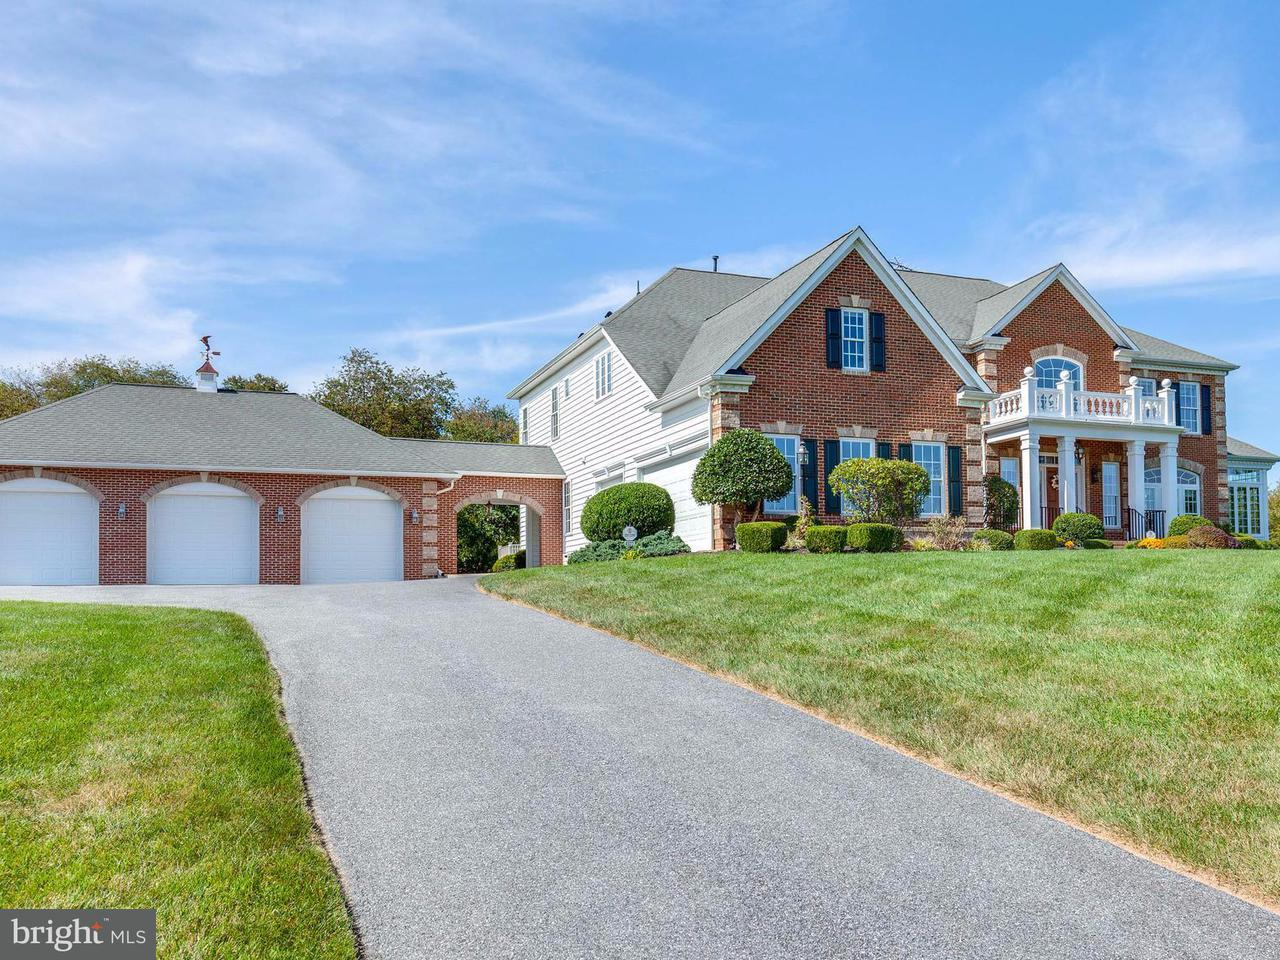 Single Family Home for Sale at 4322 LAKE FOREST Court 4322 LAKE FOREST Court Finksburg, Maryland 21048 United States